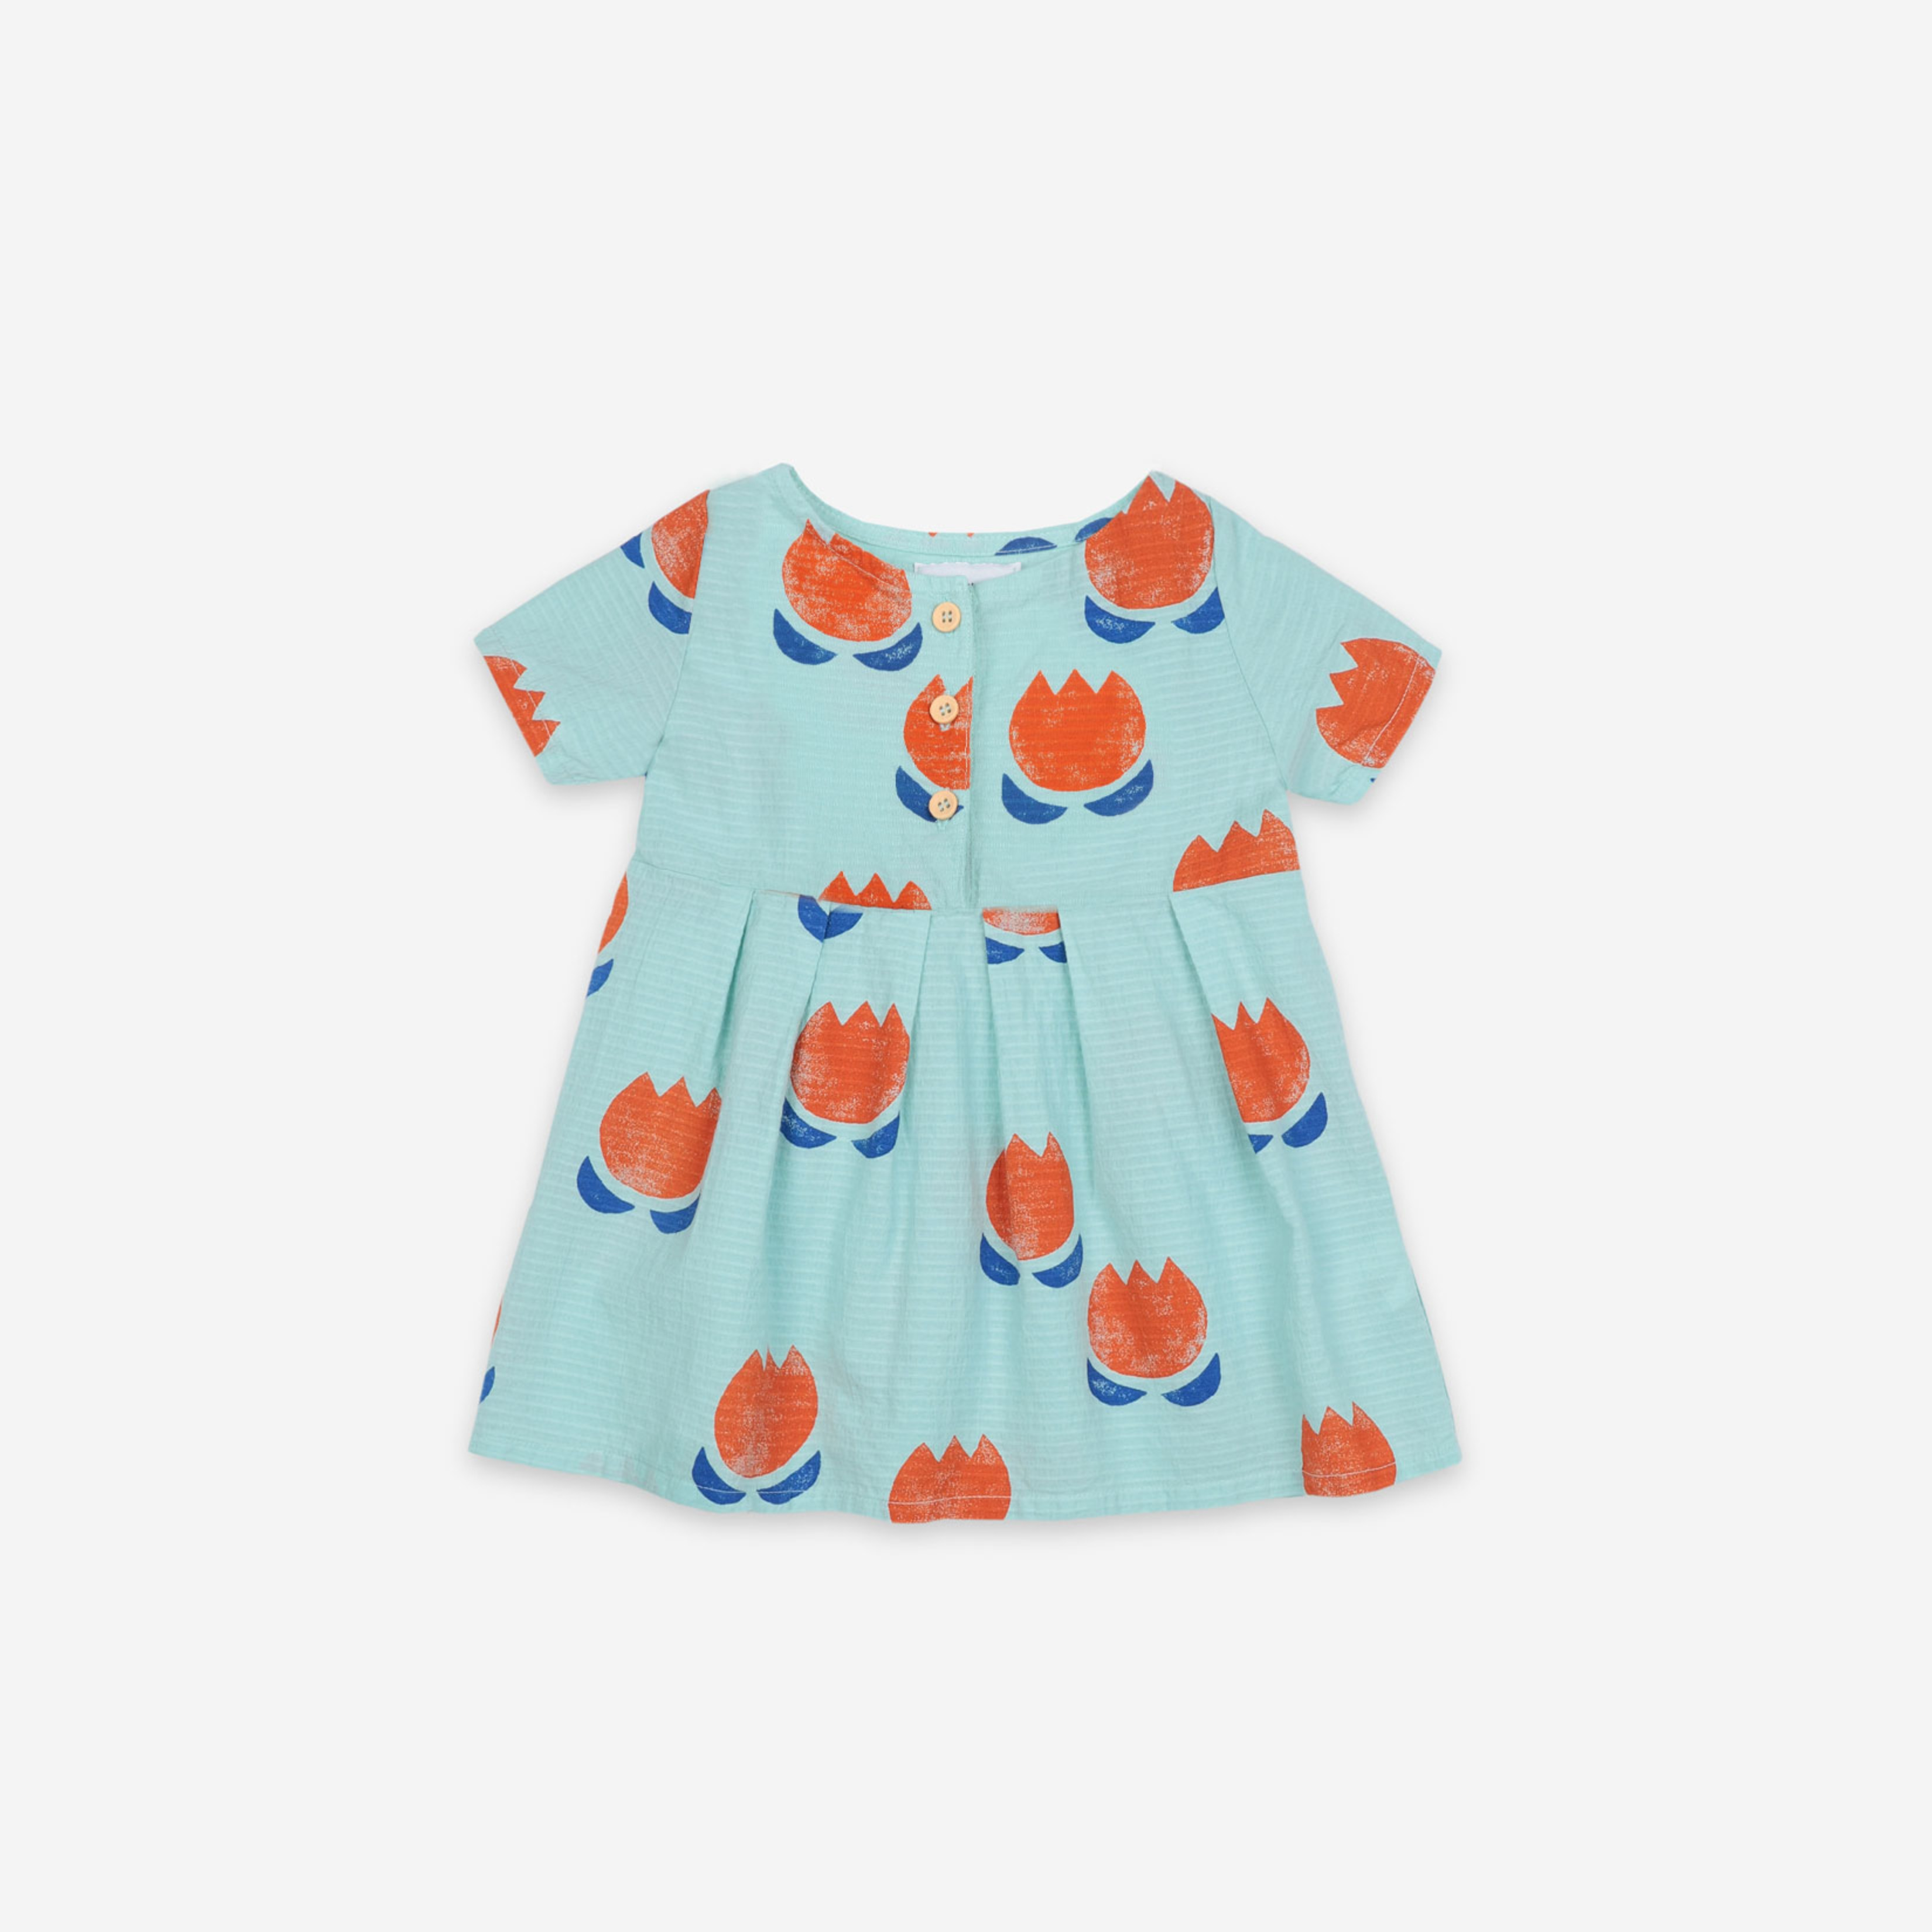 Bobo Choses - Chocolate Flowers All Over Buttoned Dress